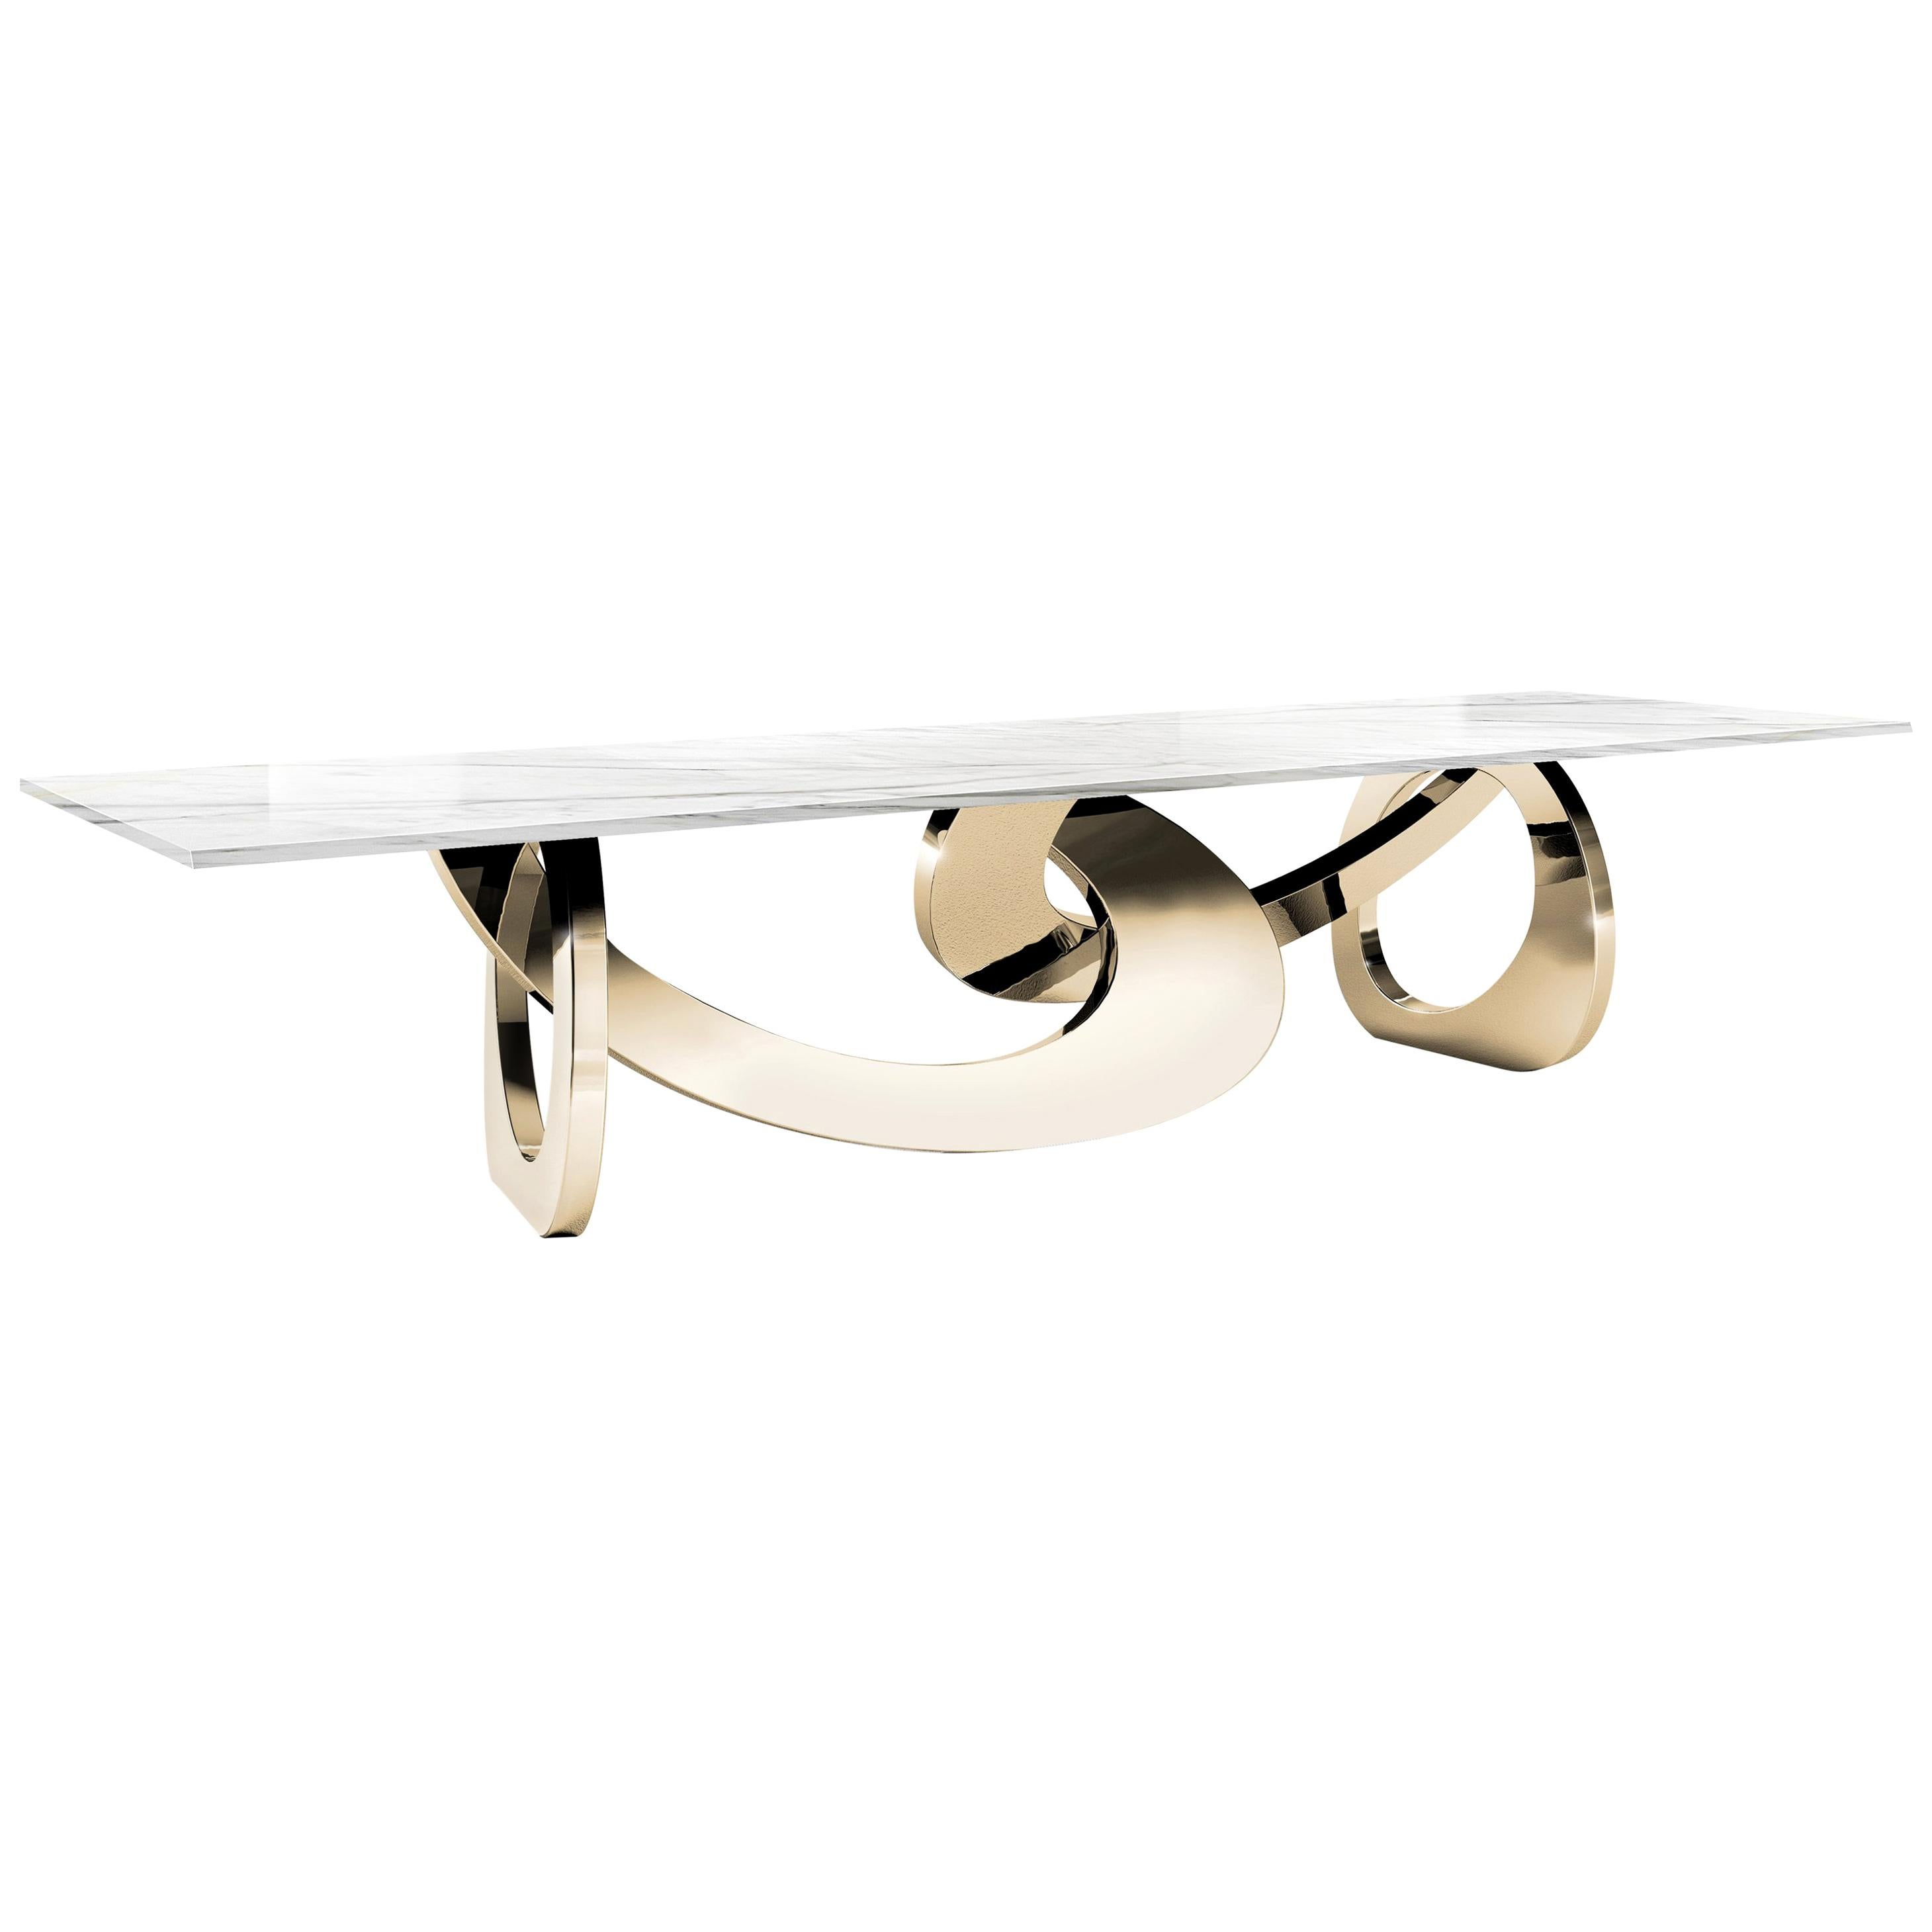 Dining Table Rectangular White Marble Gold Steel Italian Contemporary Design